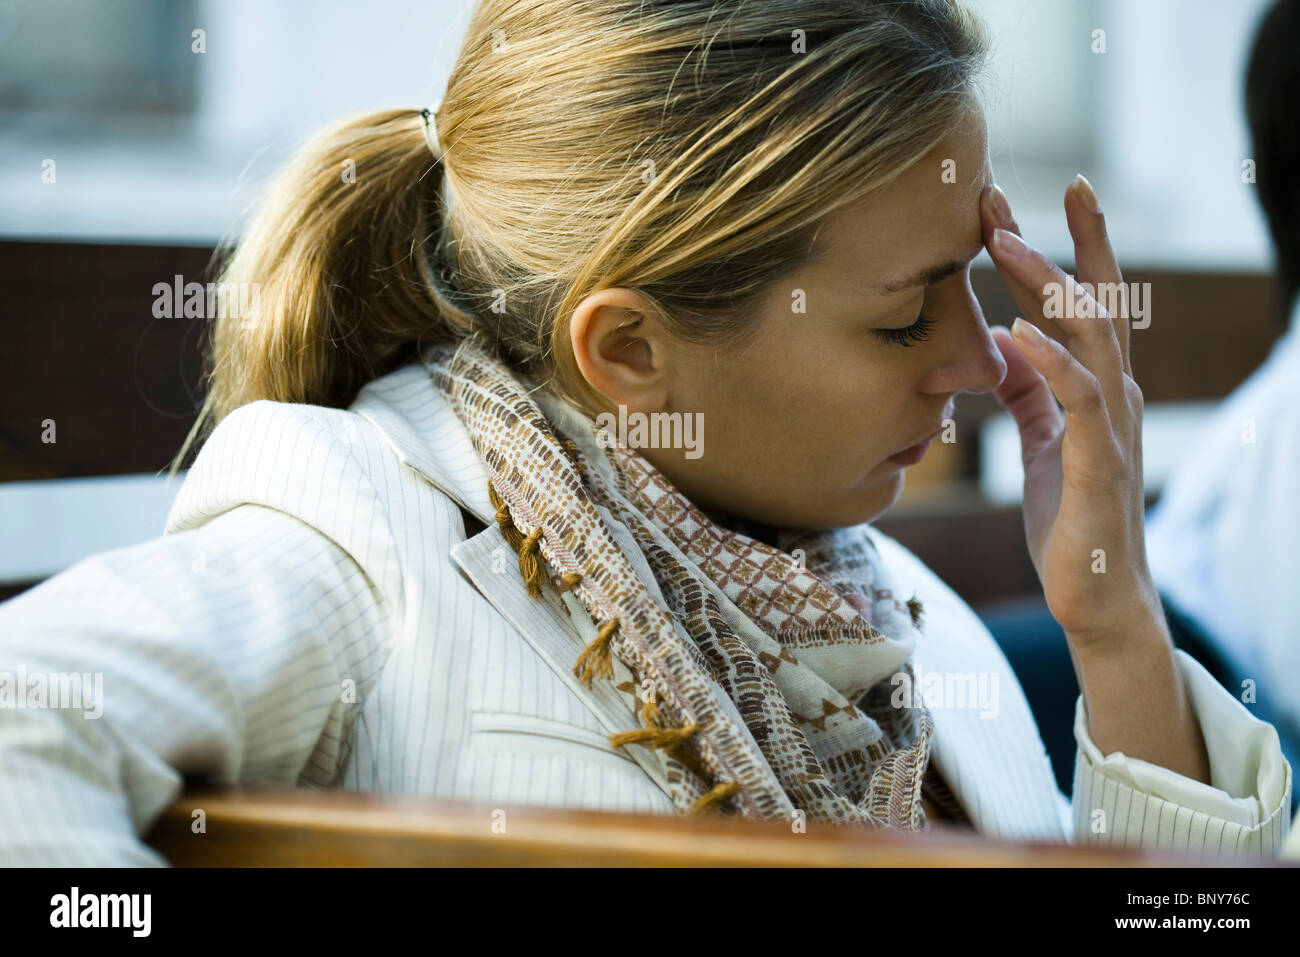 Woman suffering from a headache - Stock Image